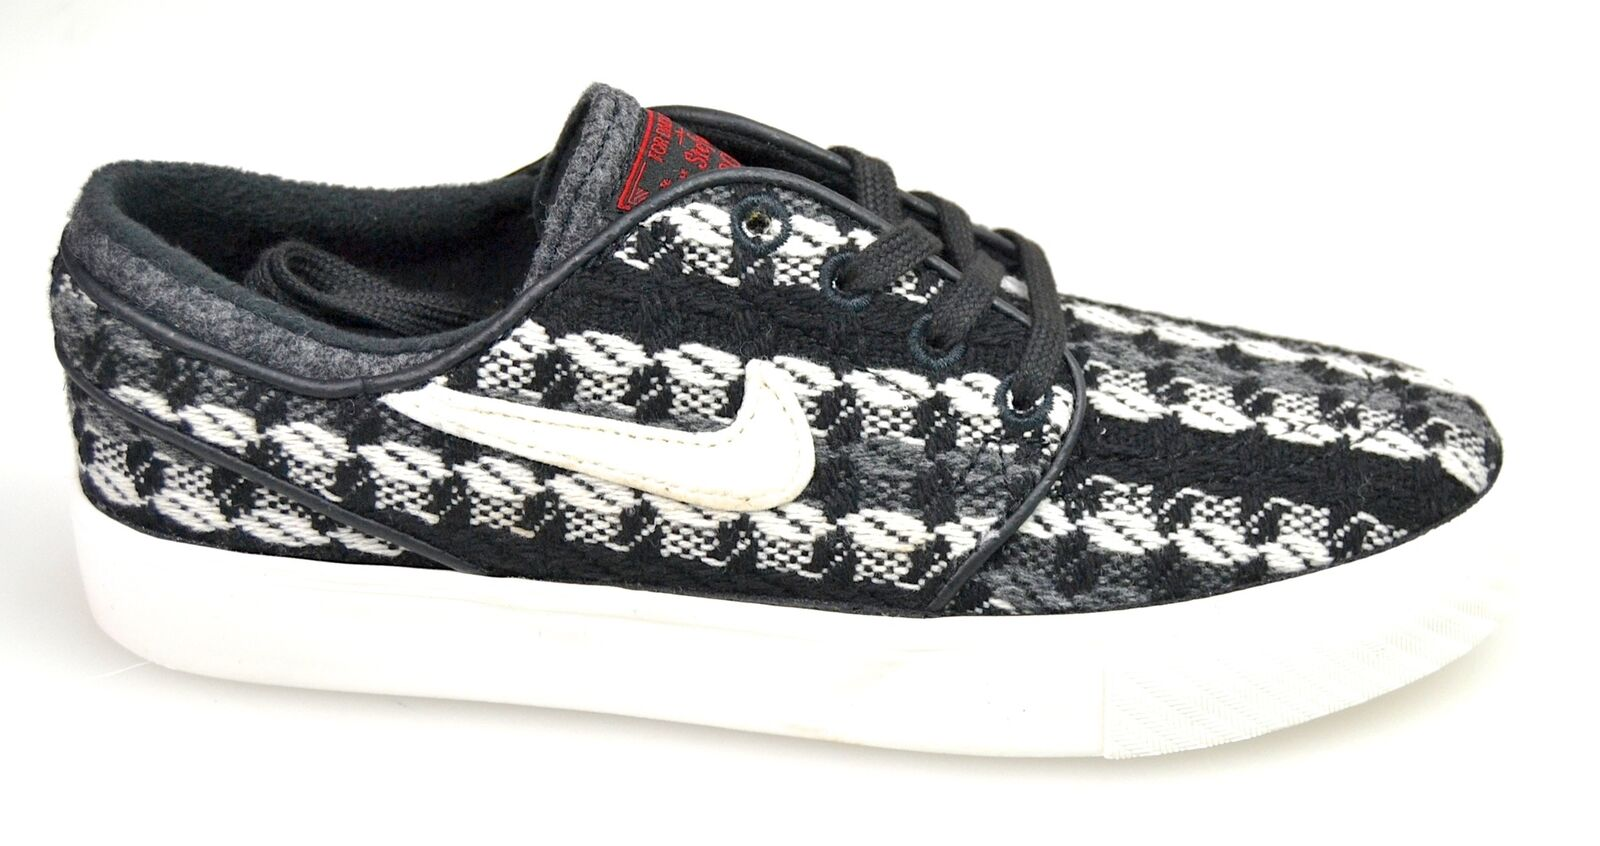 NIKE CASUAL Homme Femme UNISEX SNEAKER Chaussures CASUAL NIKE CODE STEFAN JANOSKI WARMTH 685277 016 f17022